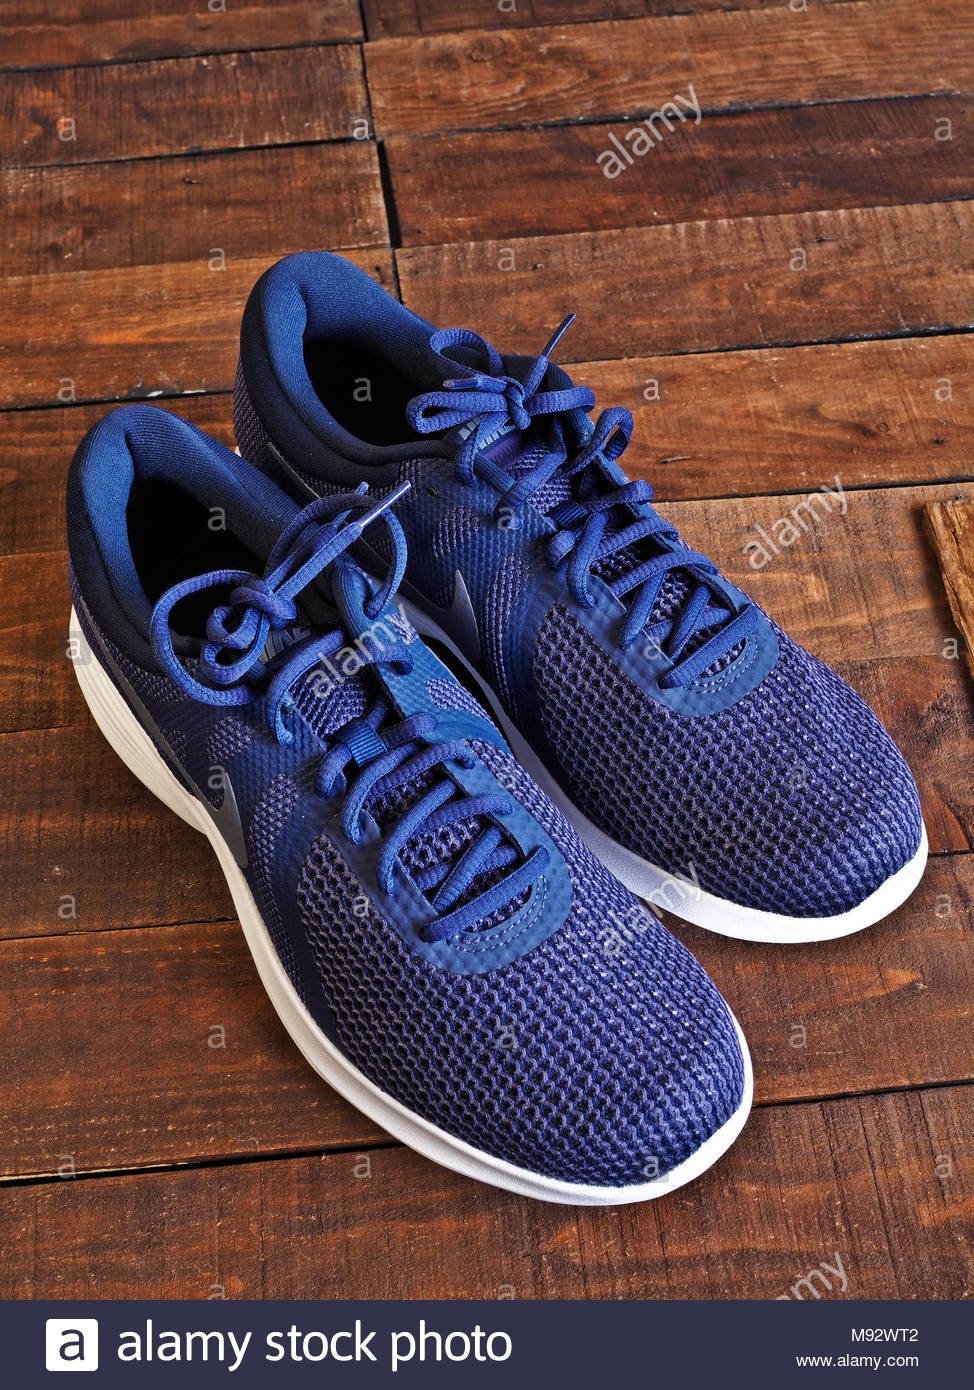 Pair of men's blue lace-up Nike trainers, on dark wooden background with copy space - Stock Image